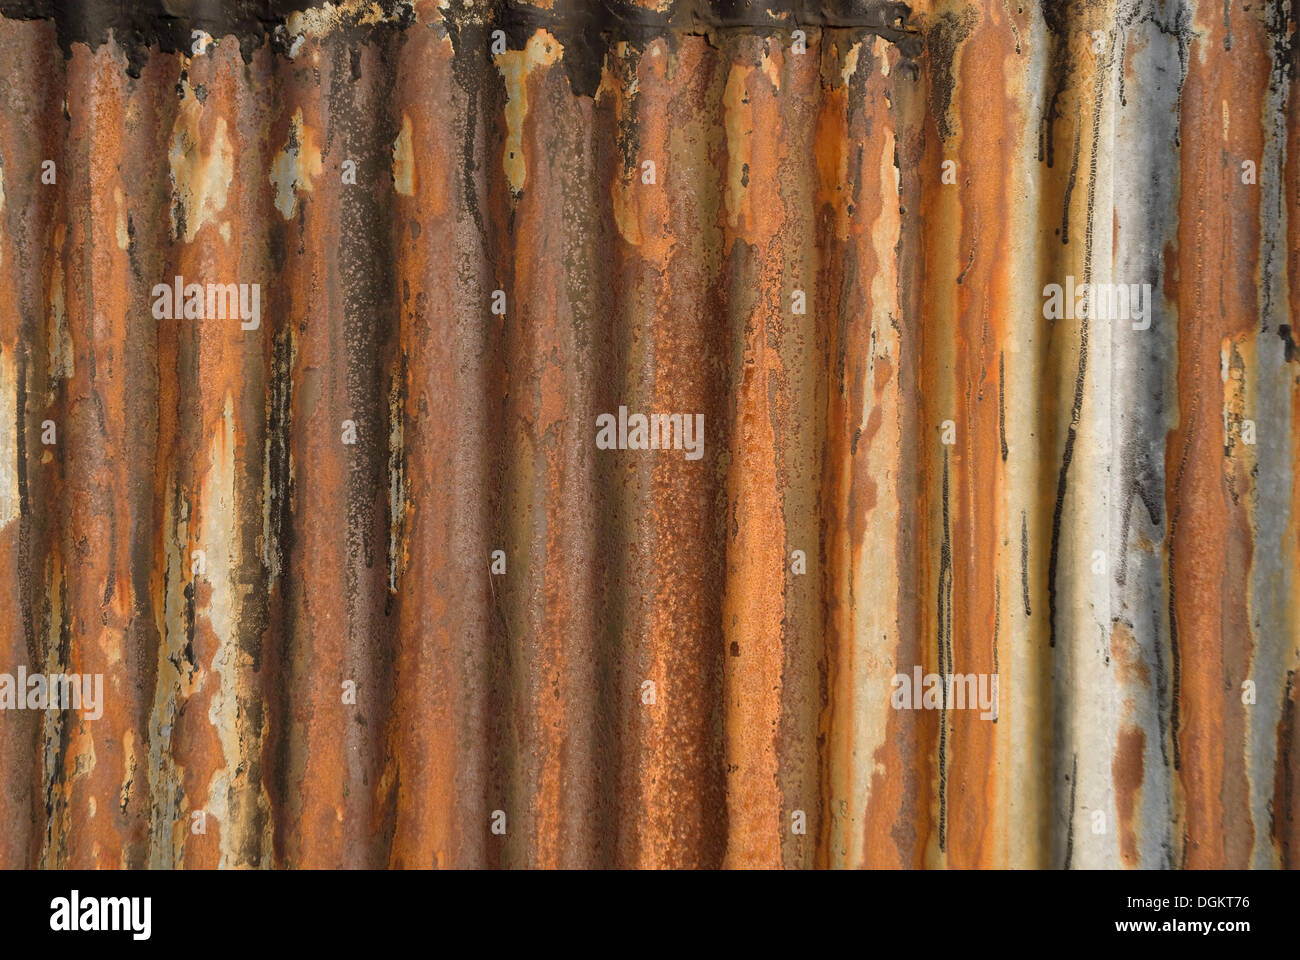 Rusty old corrugated metal plate, background - Stock Image